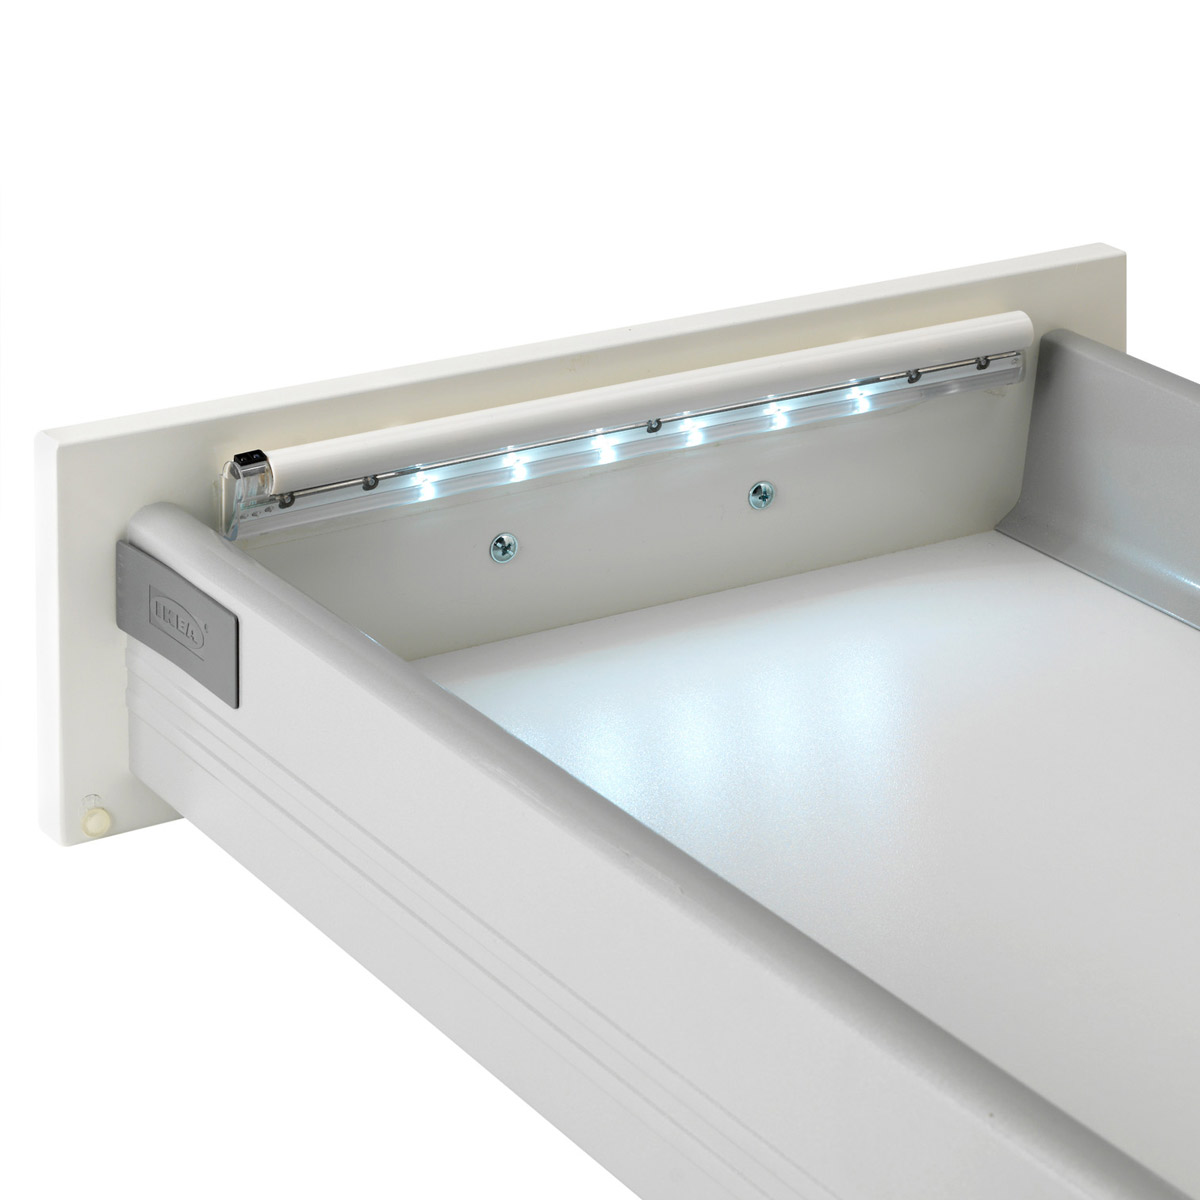 IKEA Dioder- LED Drawer Lighting - The Green Head